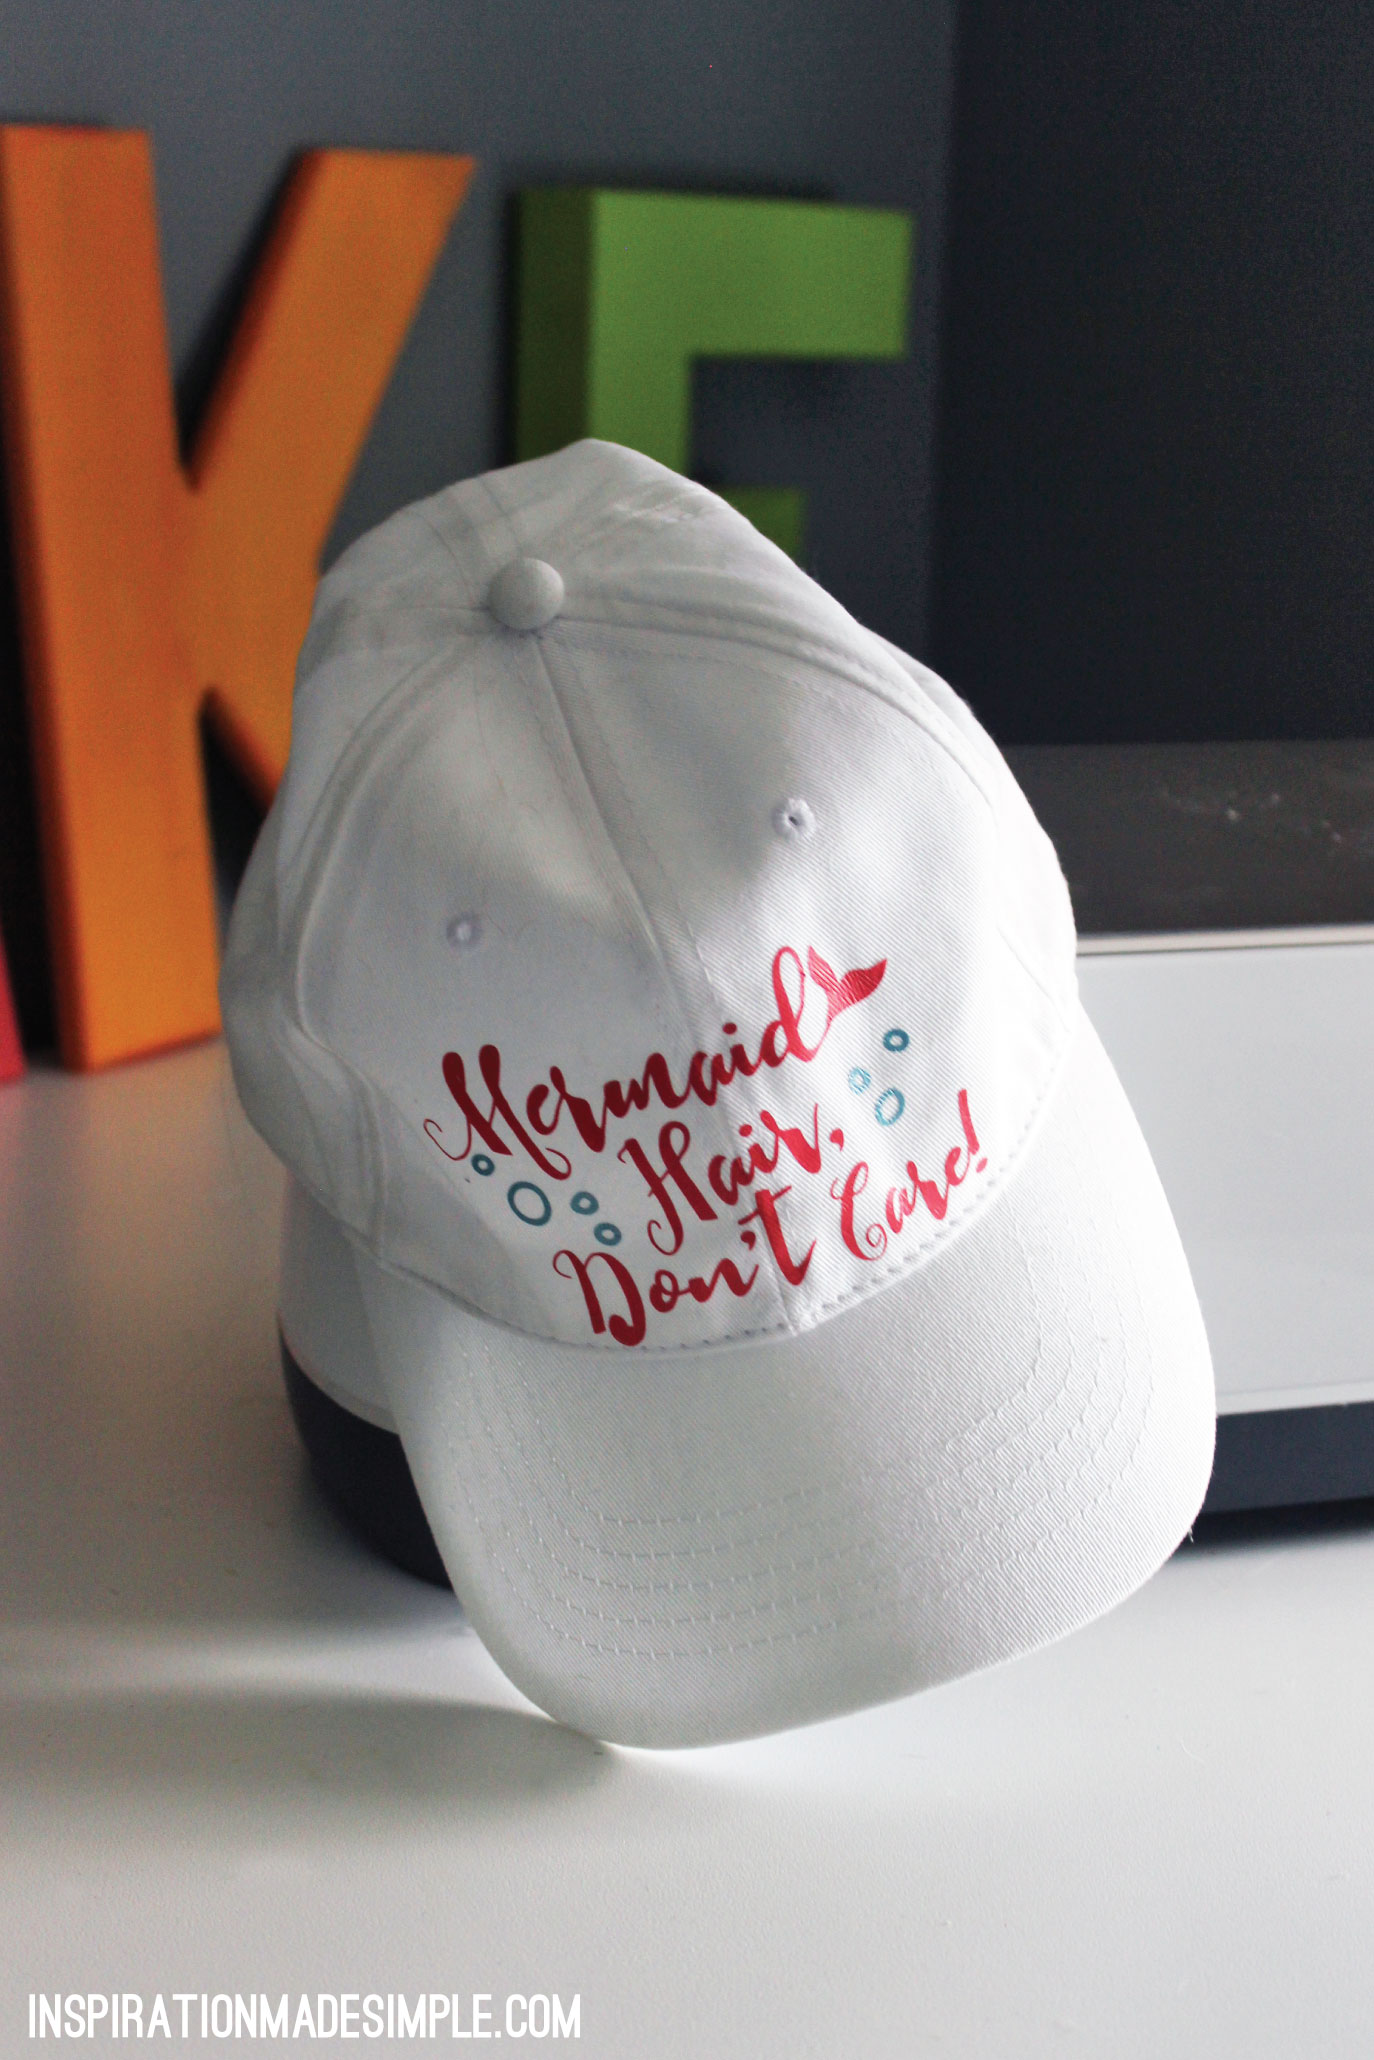 Mermaid Hair, Don't Care DIY Hat with Cricut Maker